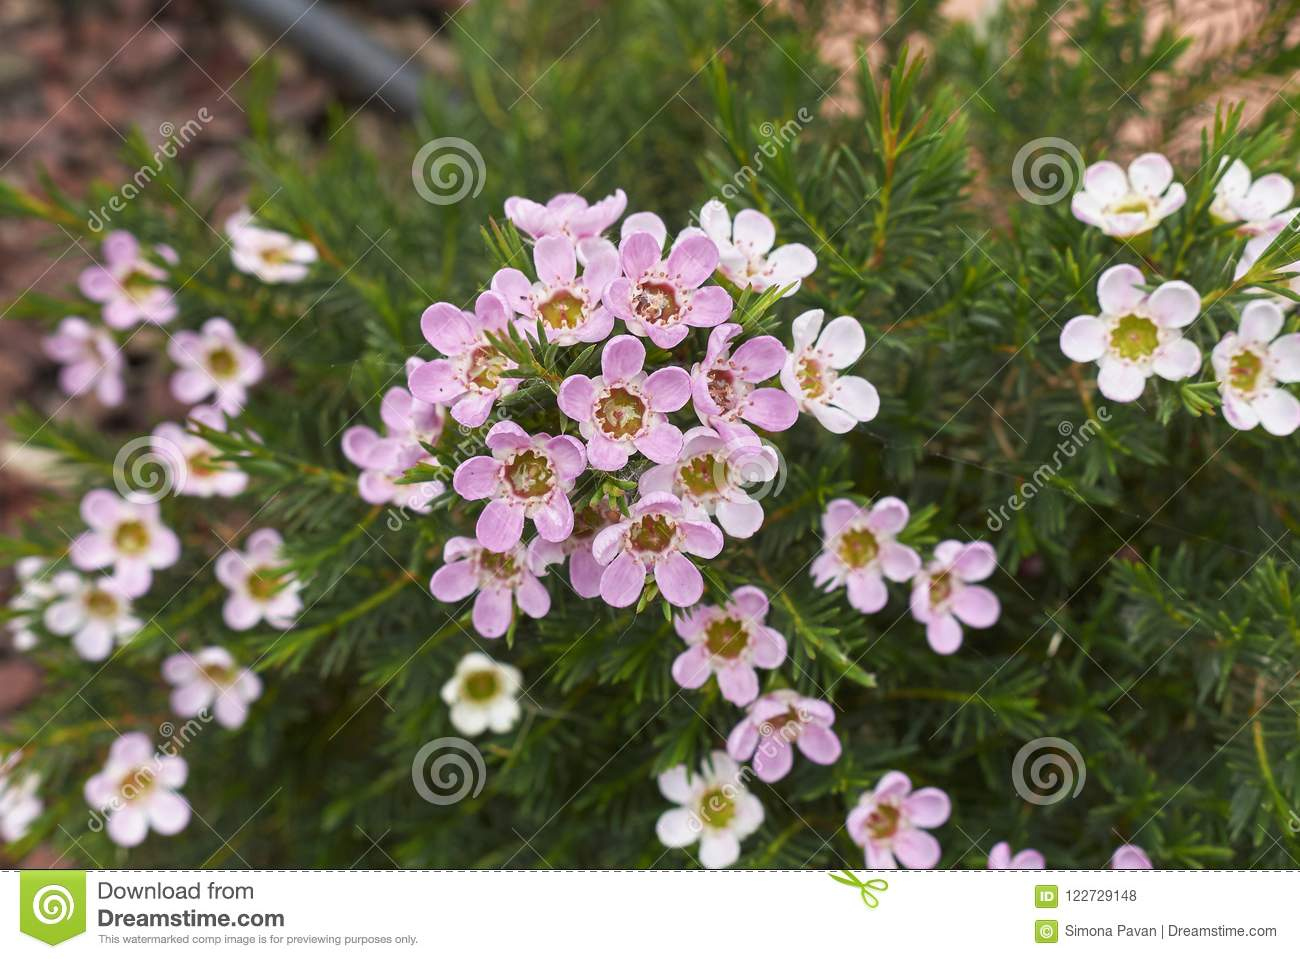 Pink And White Flowers Of Chamelaucium Uncinatum Plant Stock Photo